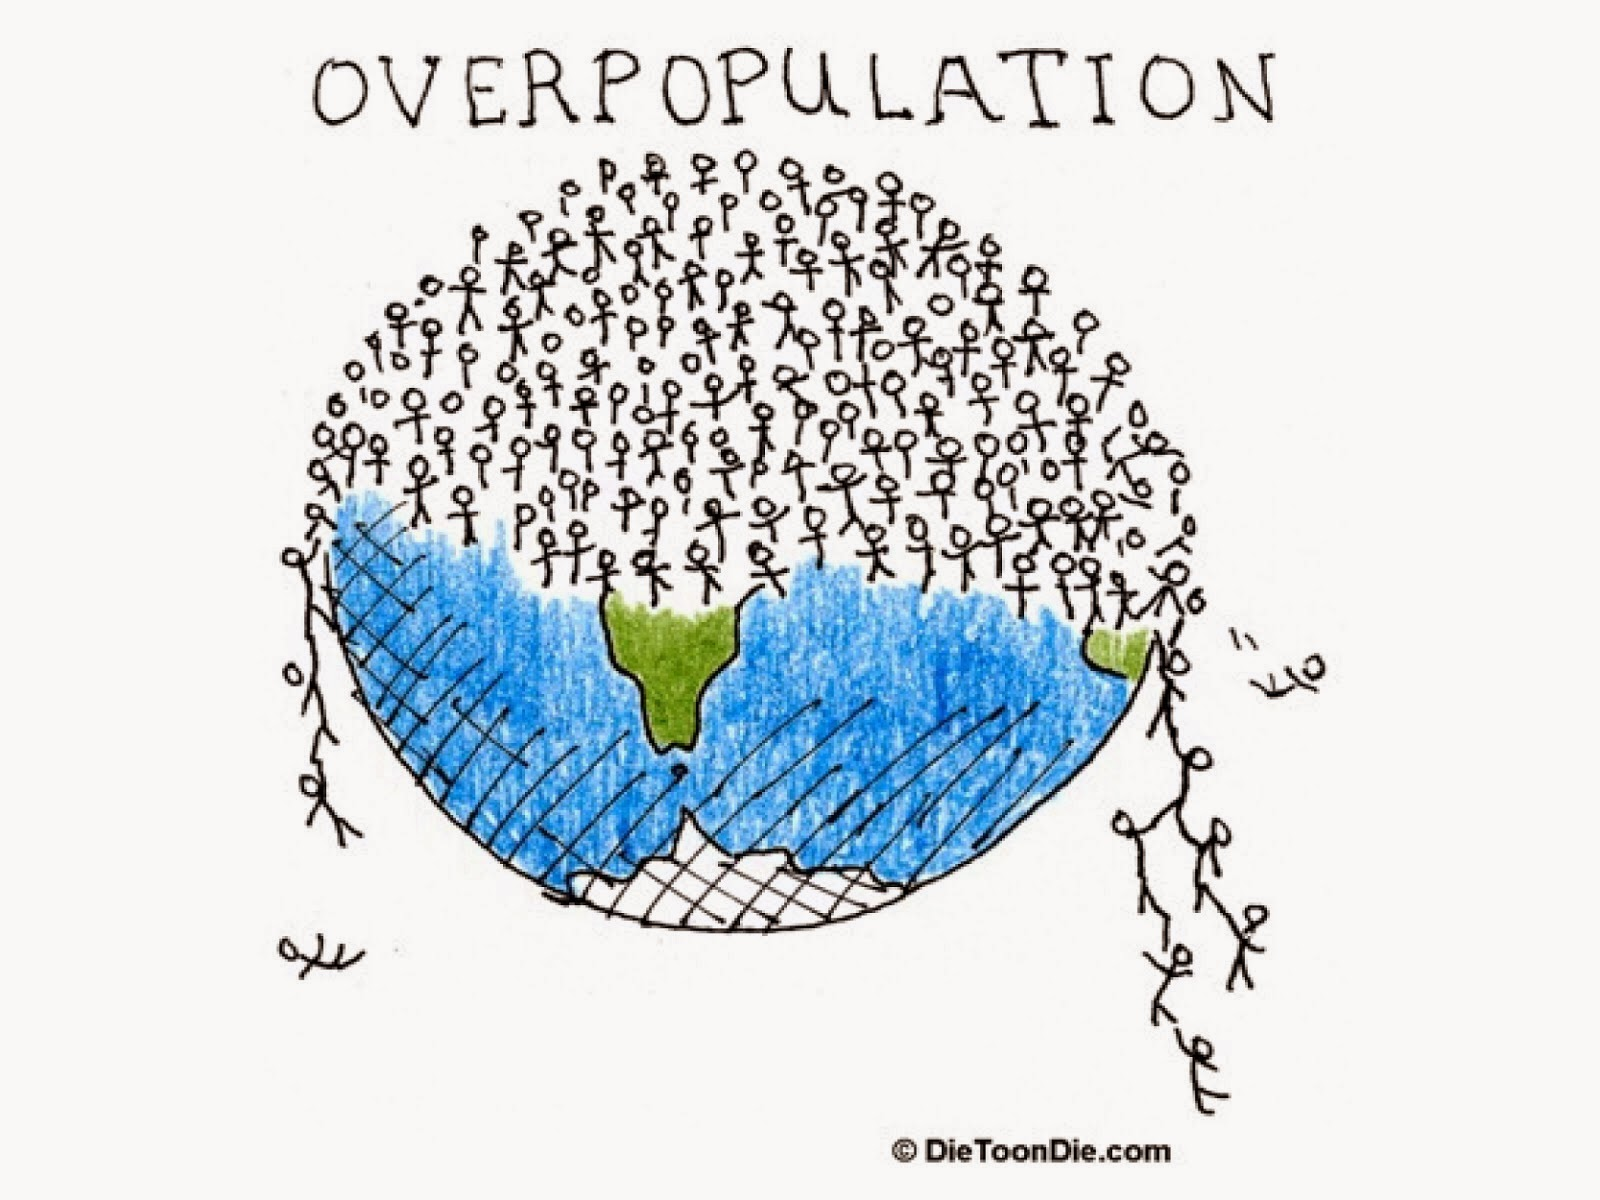 human overpopulation Go forth and multiply that's what the human population has successfully been doing for thousands and thousands of years, expanding, exploring, migrating.